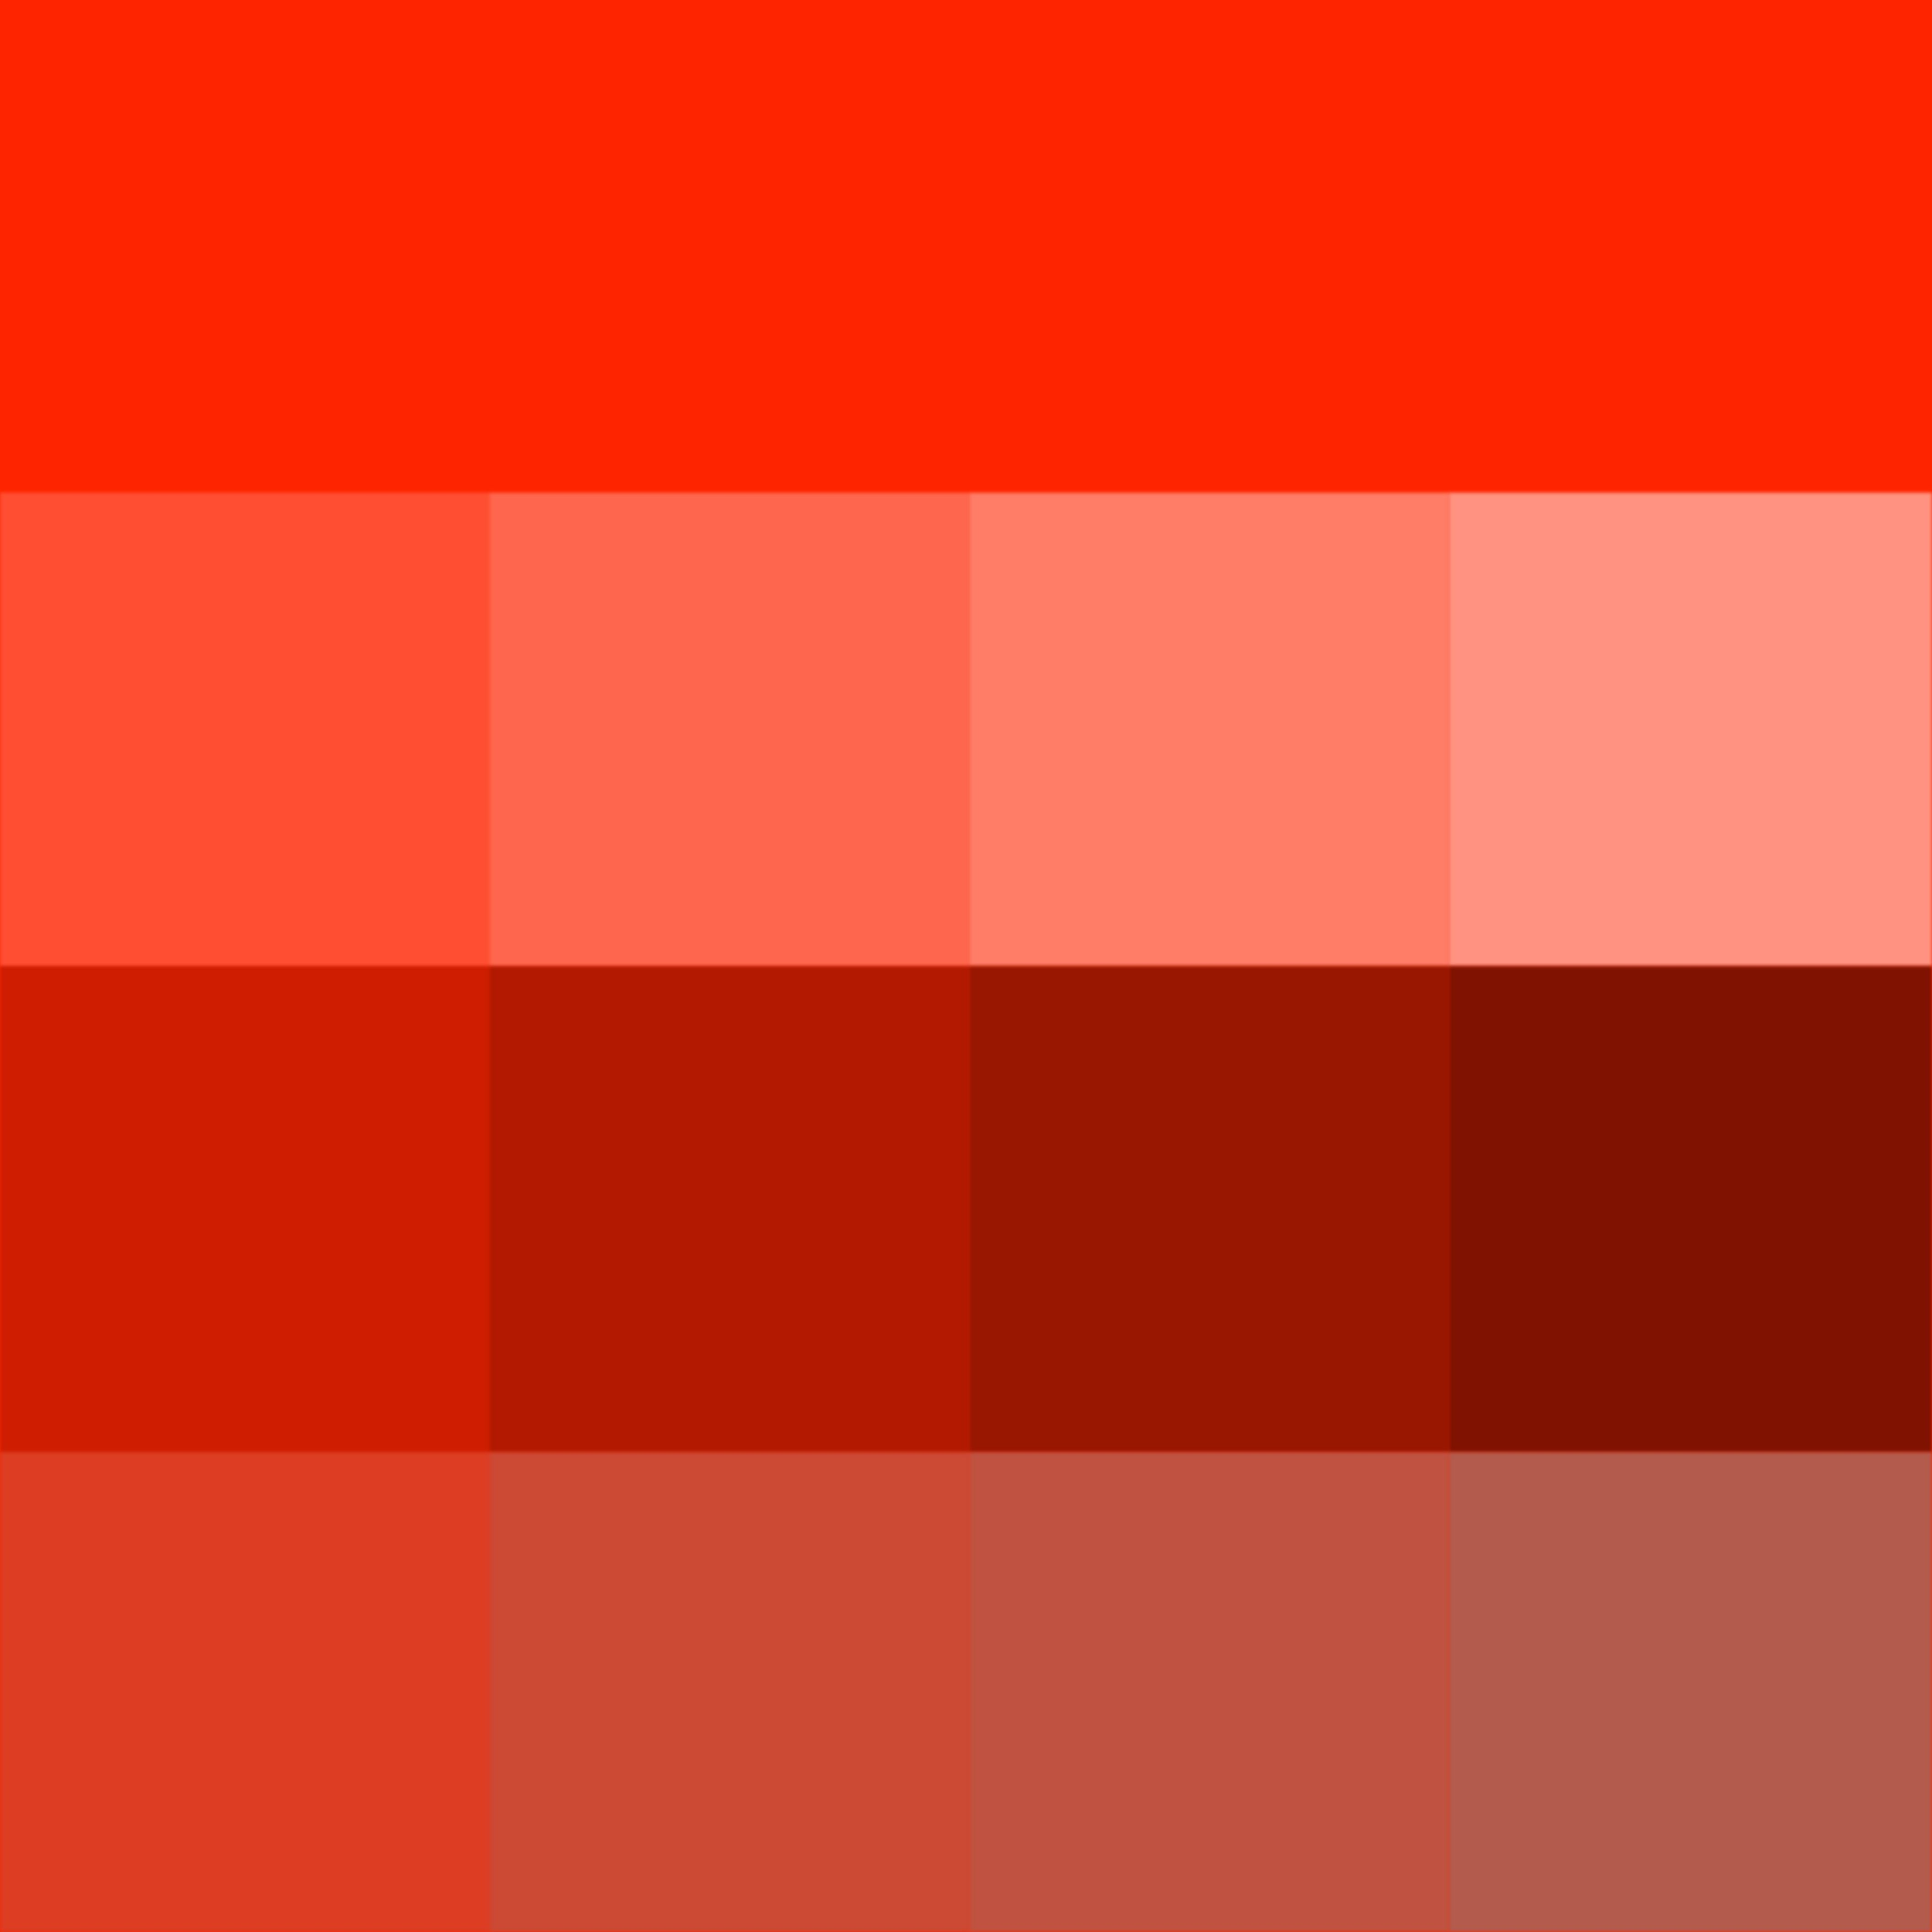 Scarlet Hue Tints Shades Tones Hue Pure Color With Tints Hue White Shades Hue Black And Tones Hue Color Textures Color Theory Colour Tint